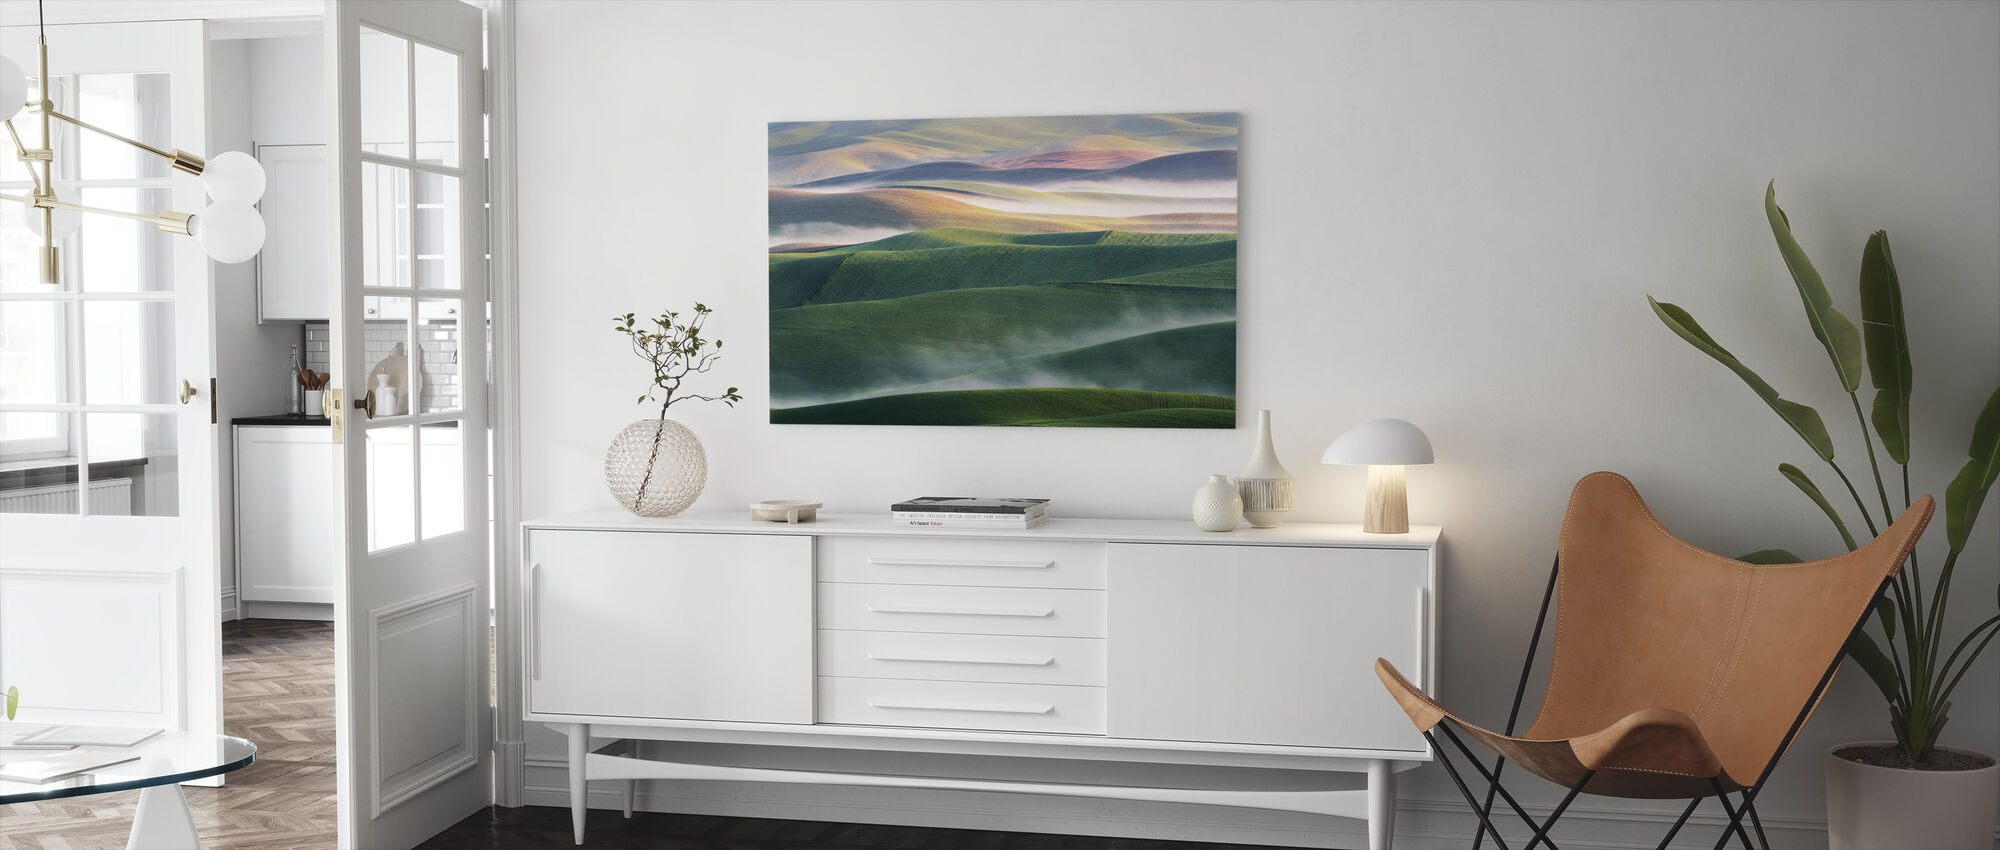 Foggy Morning - Canvas print - Living Room